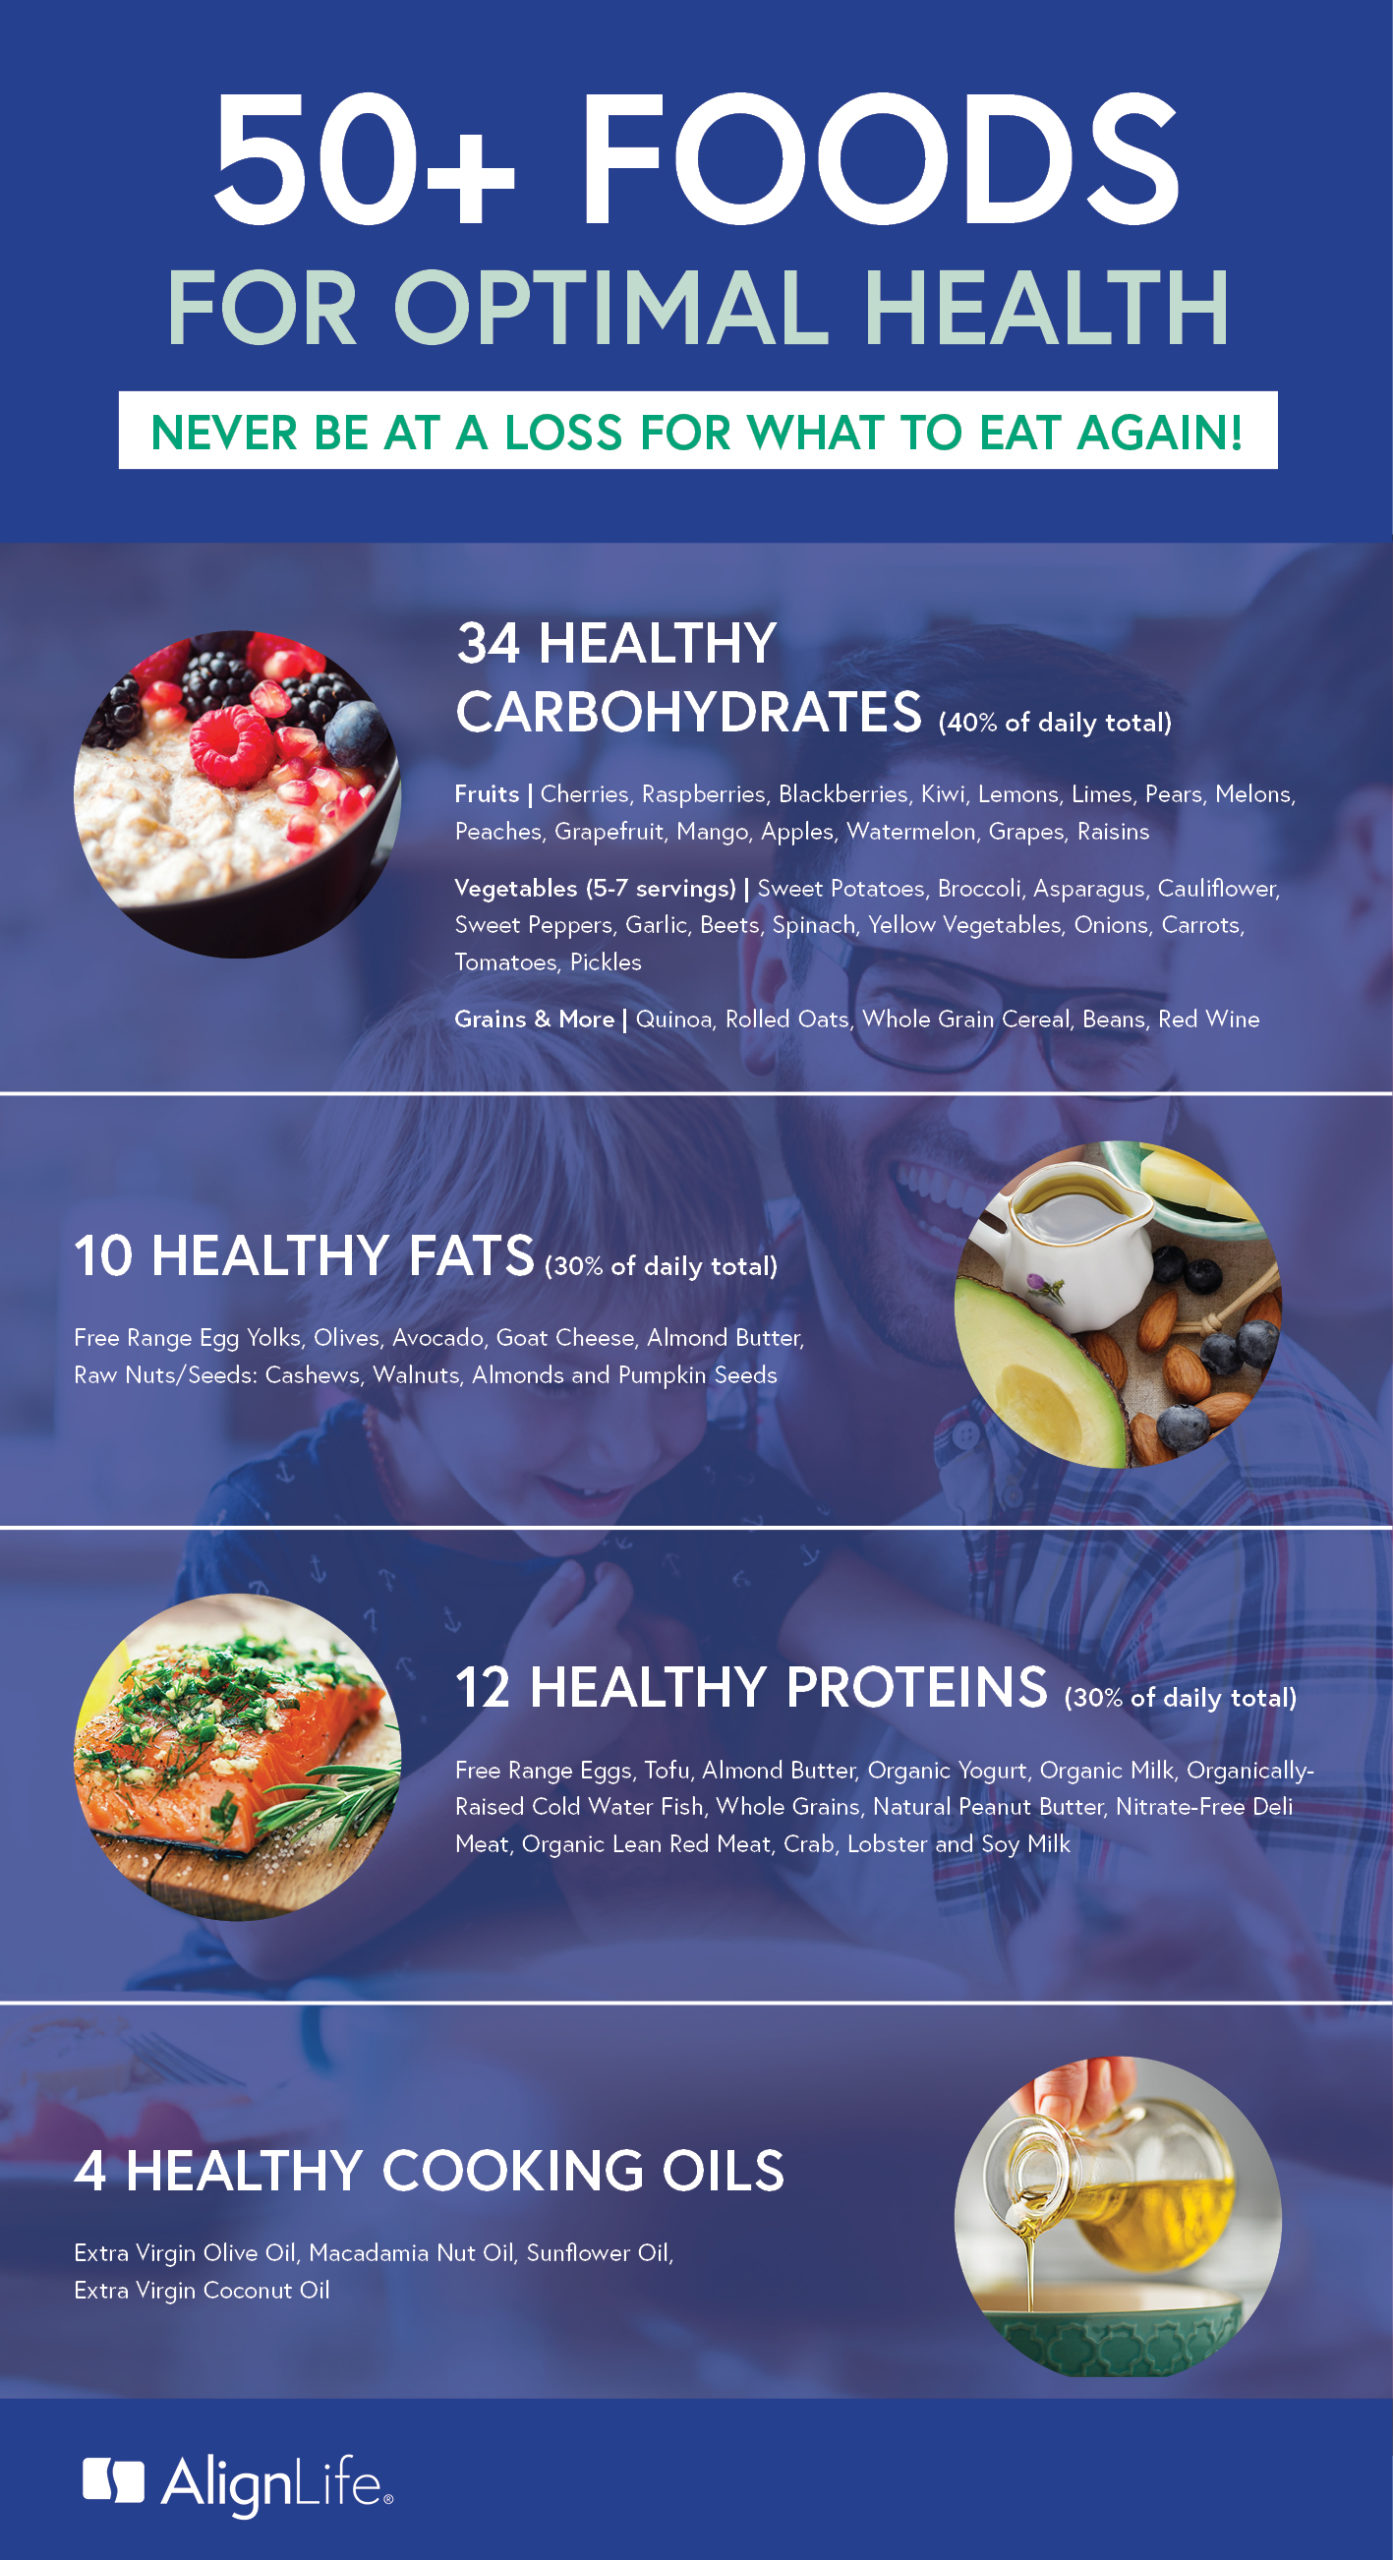 50+ Foods for Optimal Health